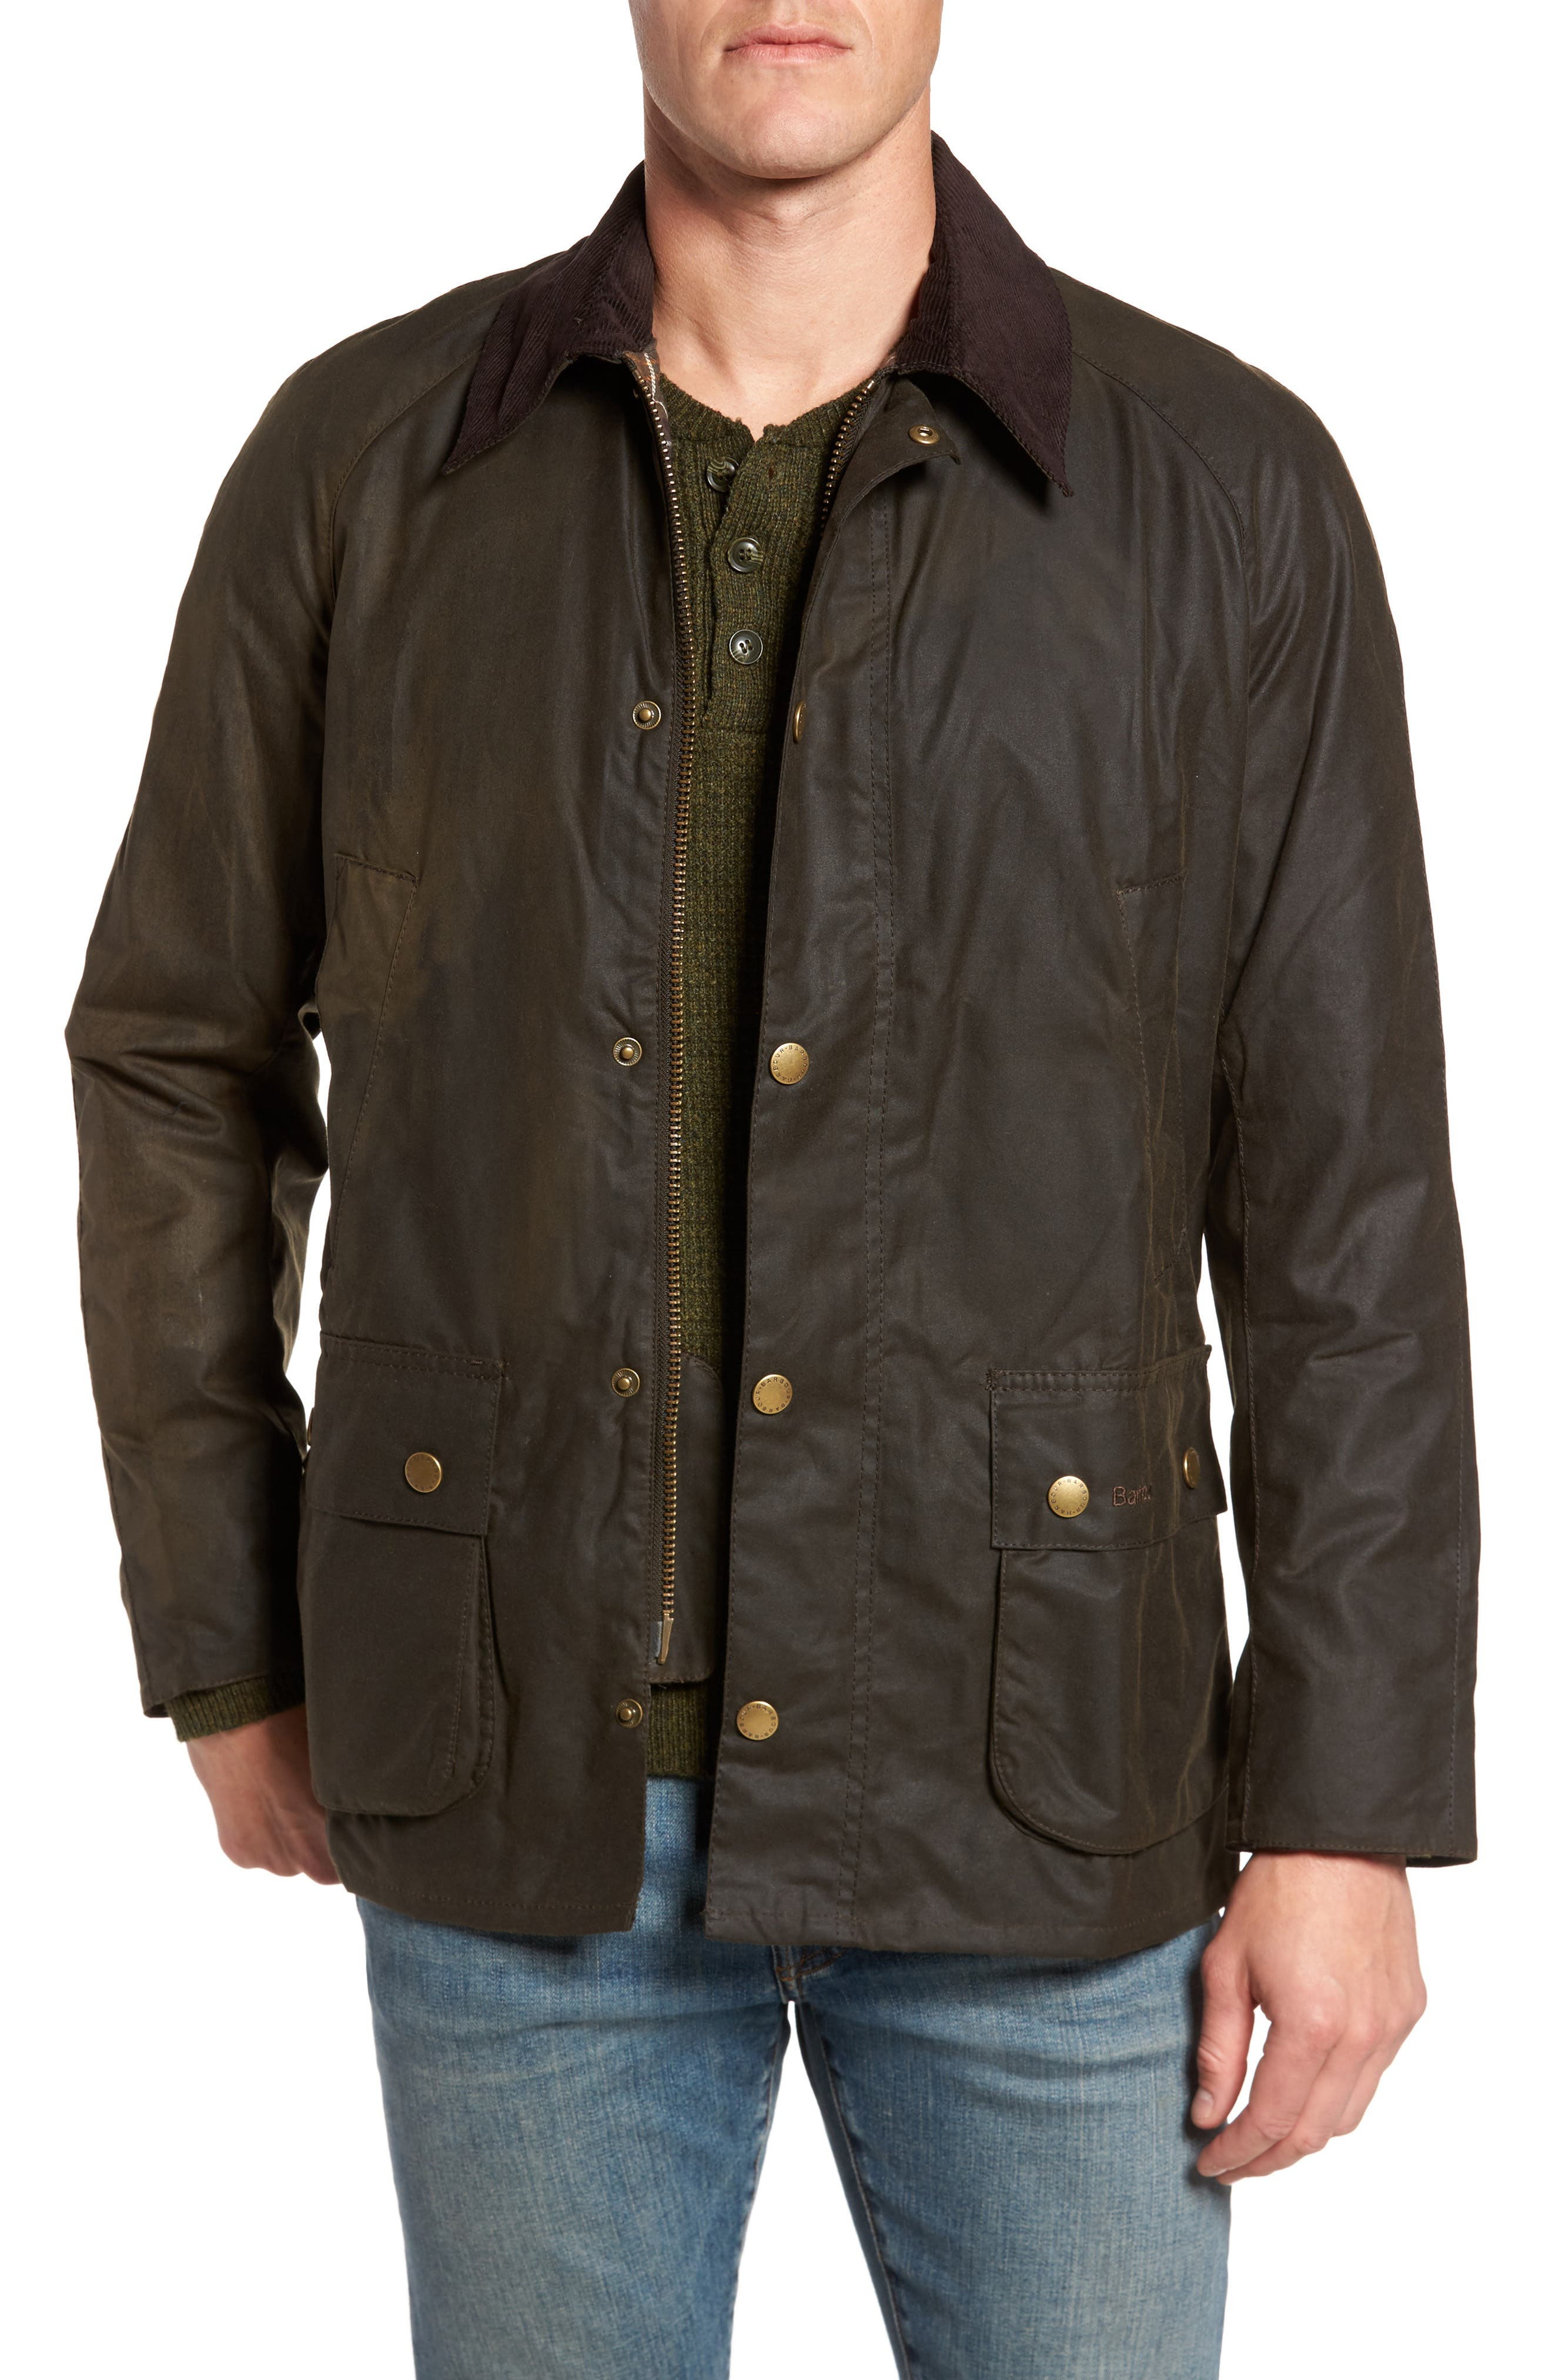 BARBOUR, Ashby Wax Jacket, Main thumbnail 1, color, OLIVE